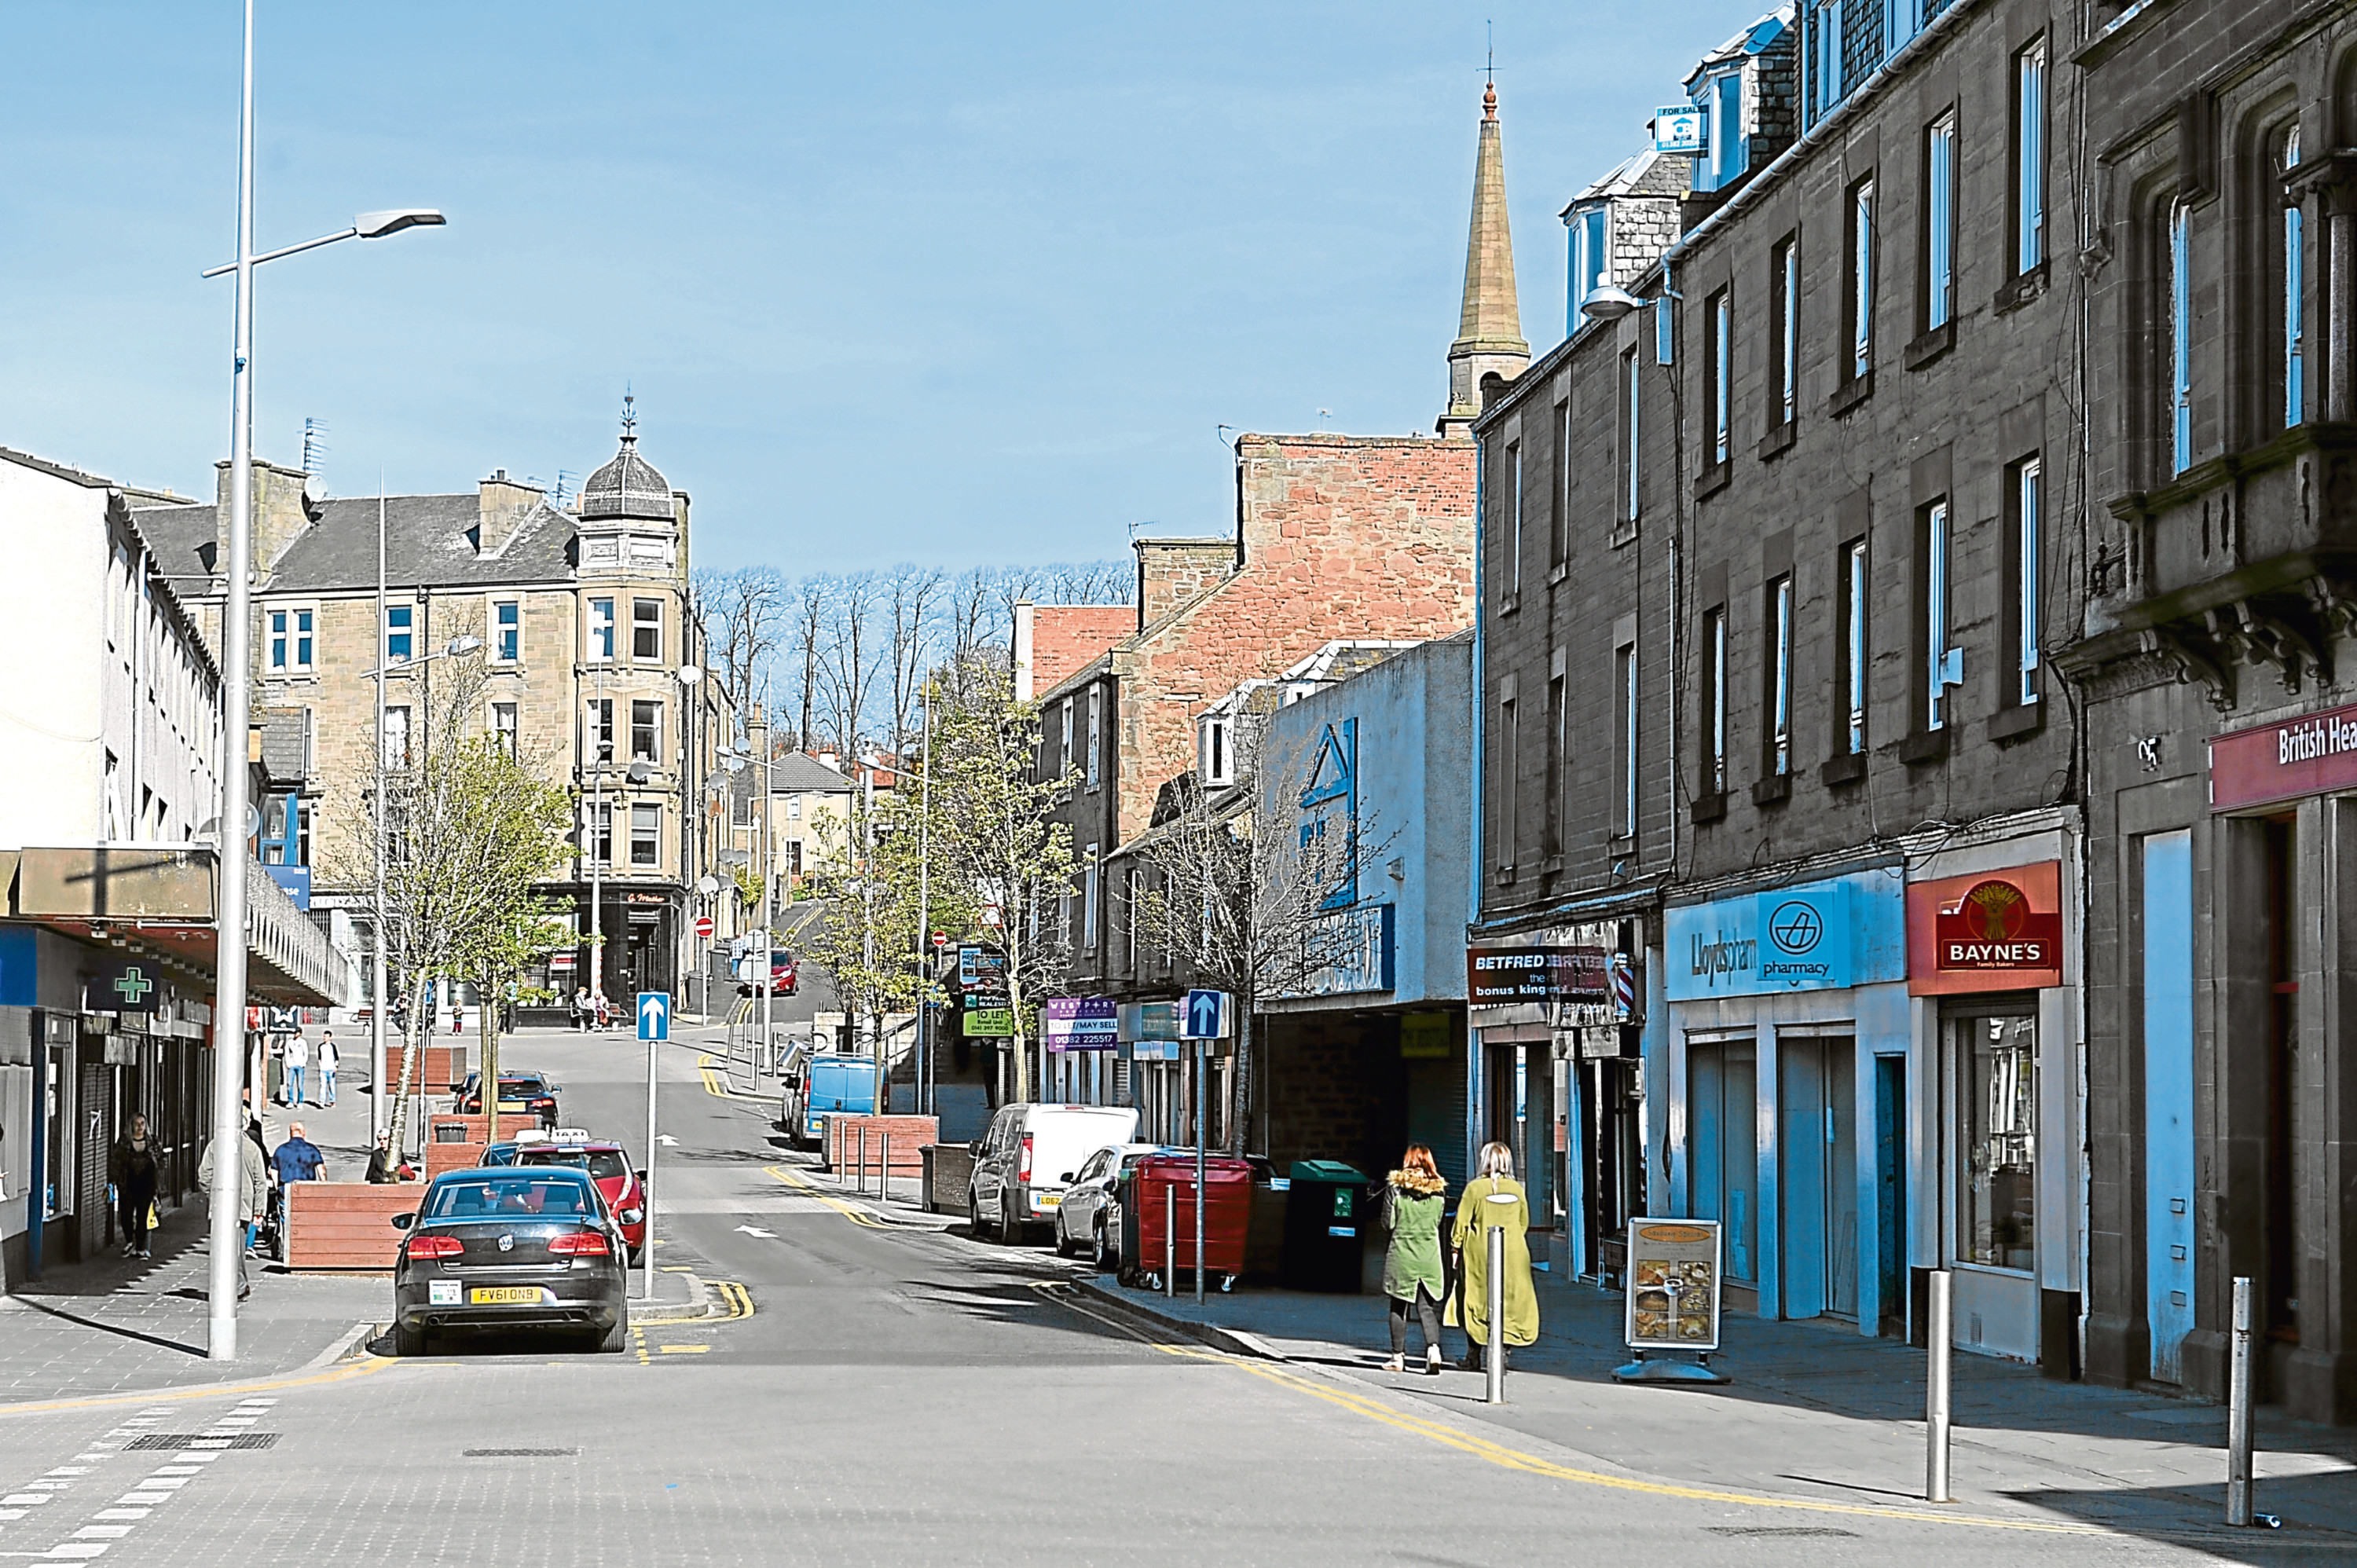 High Street in Lochee (stock image)